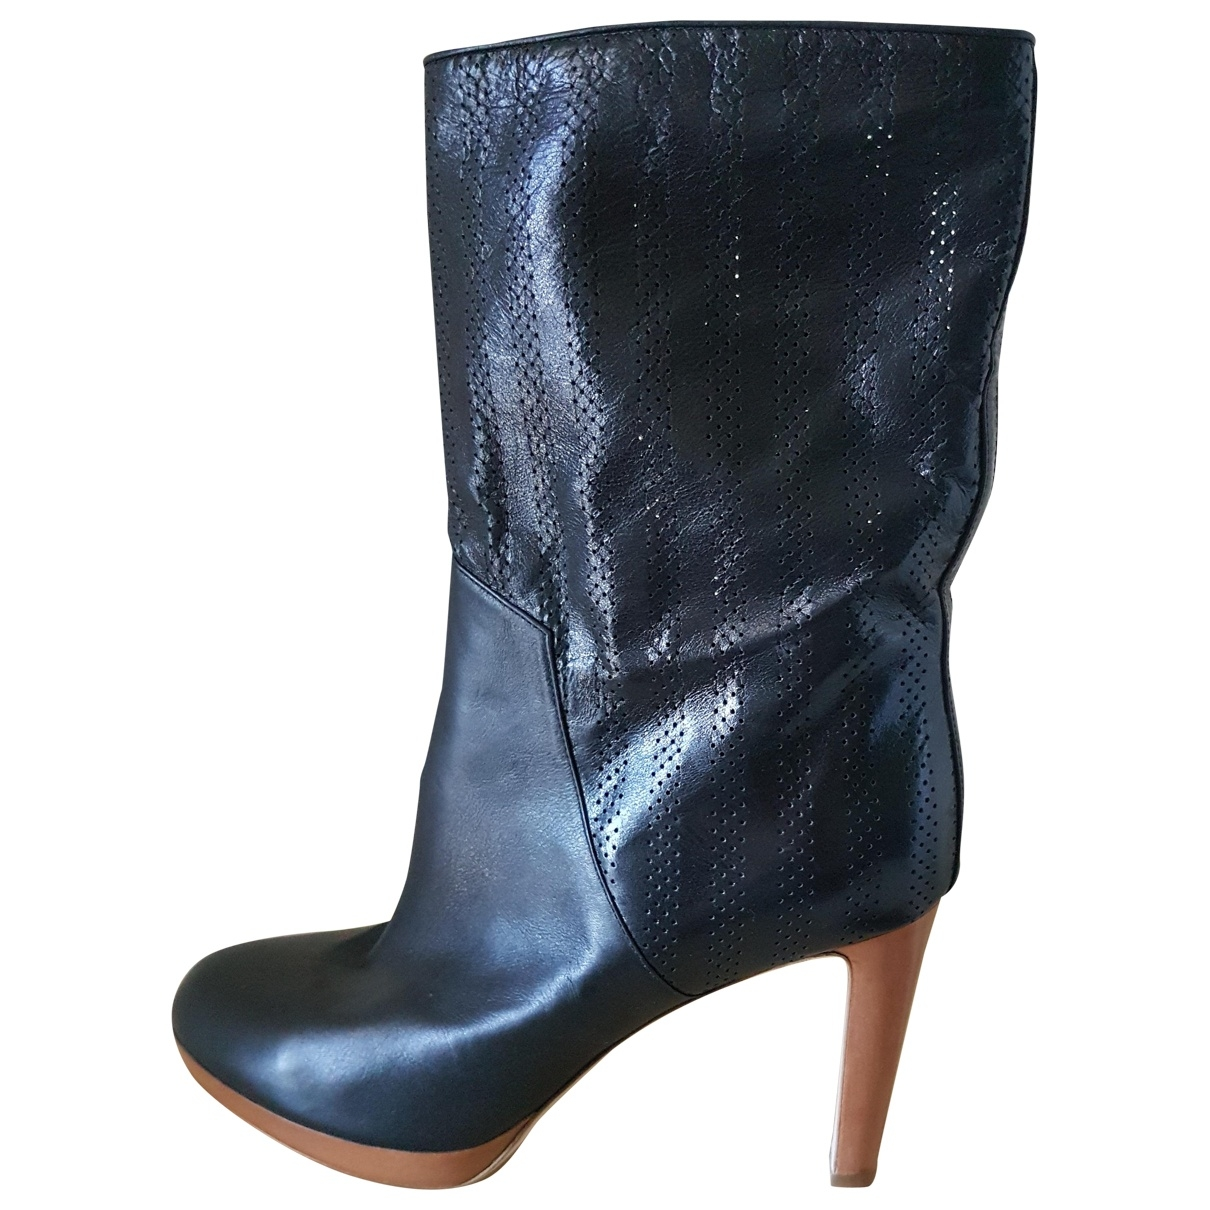 Sergio Rossi \N Black Leather Boots for Women 41 EU